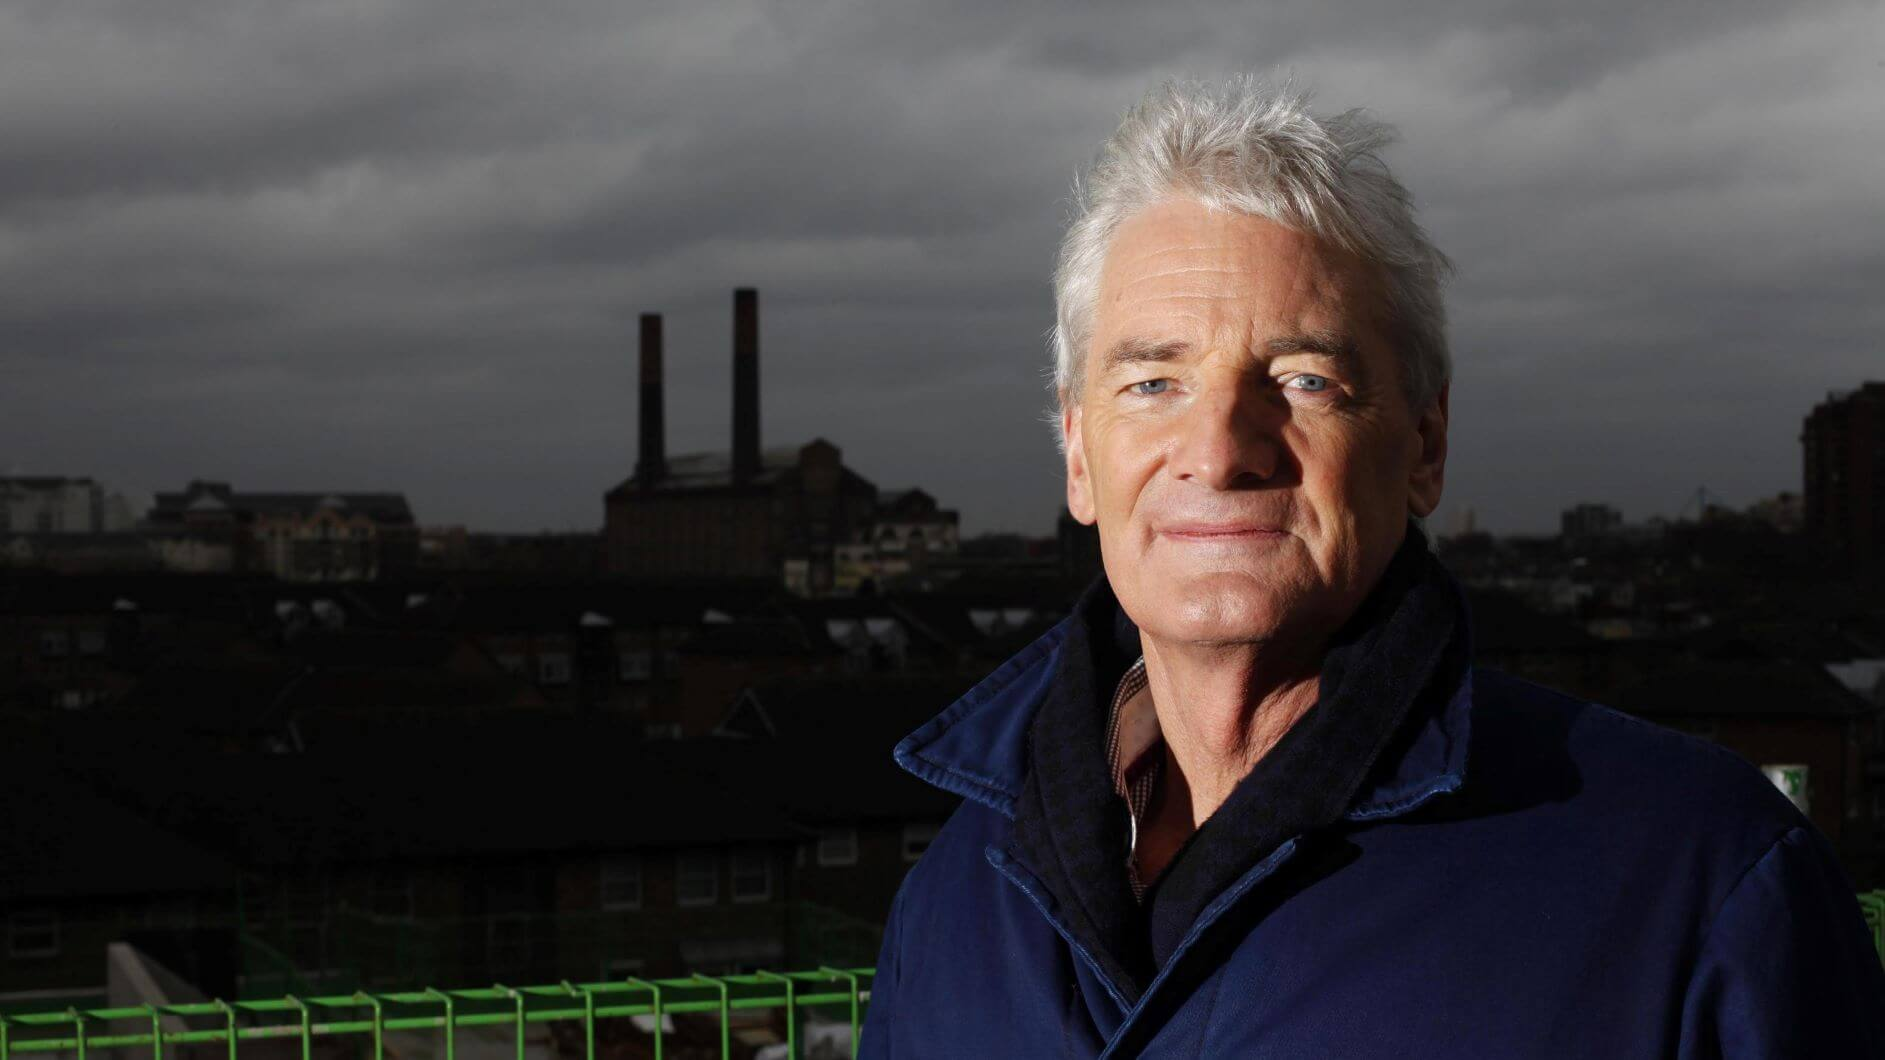 Sir James Dyson – From Vacuum Cleaners To Ventilators